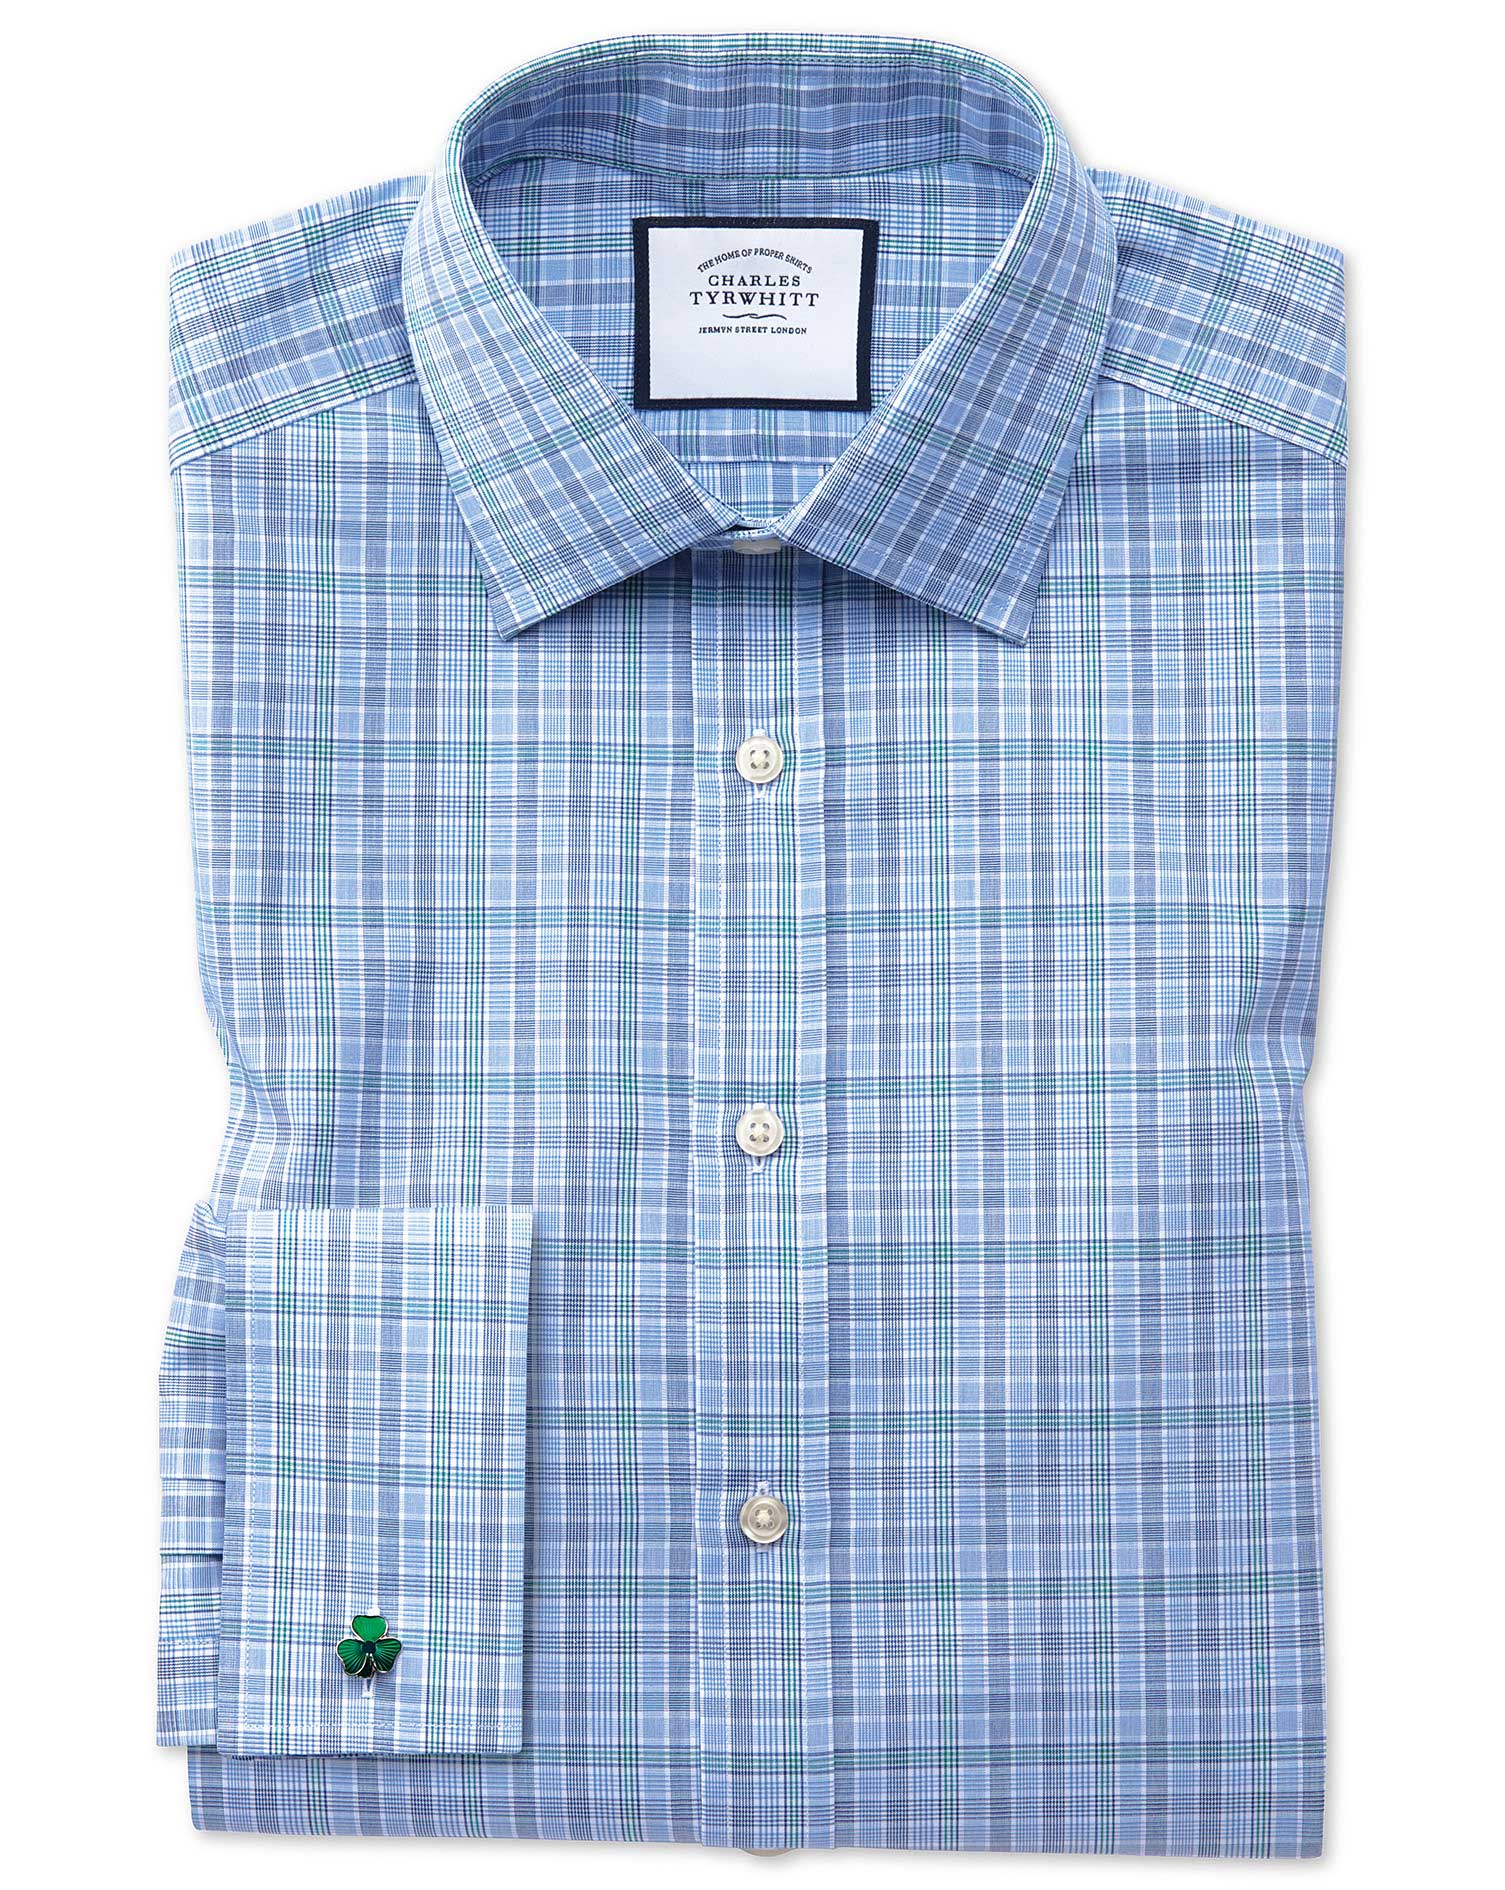 Classic Fit Blue and Green Prince Of Wales Check Cotton Formal Shirt Double Cuff Size 15.5/34 by Cha